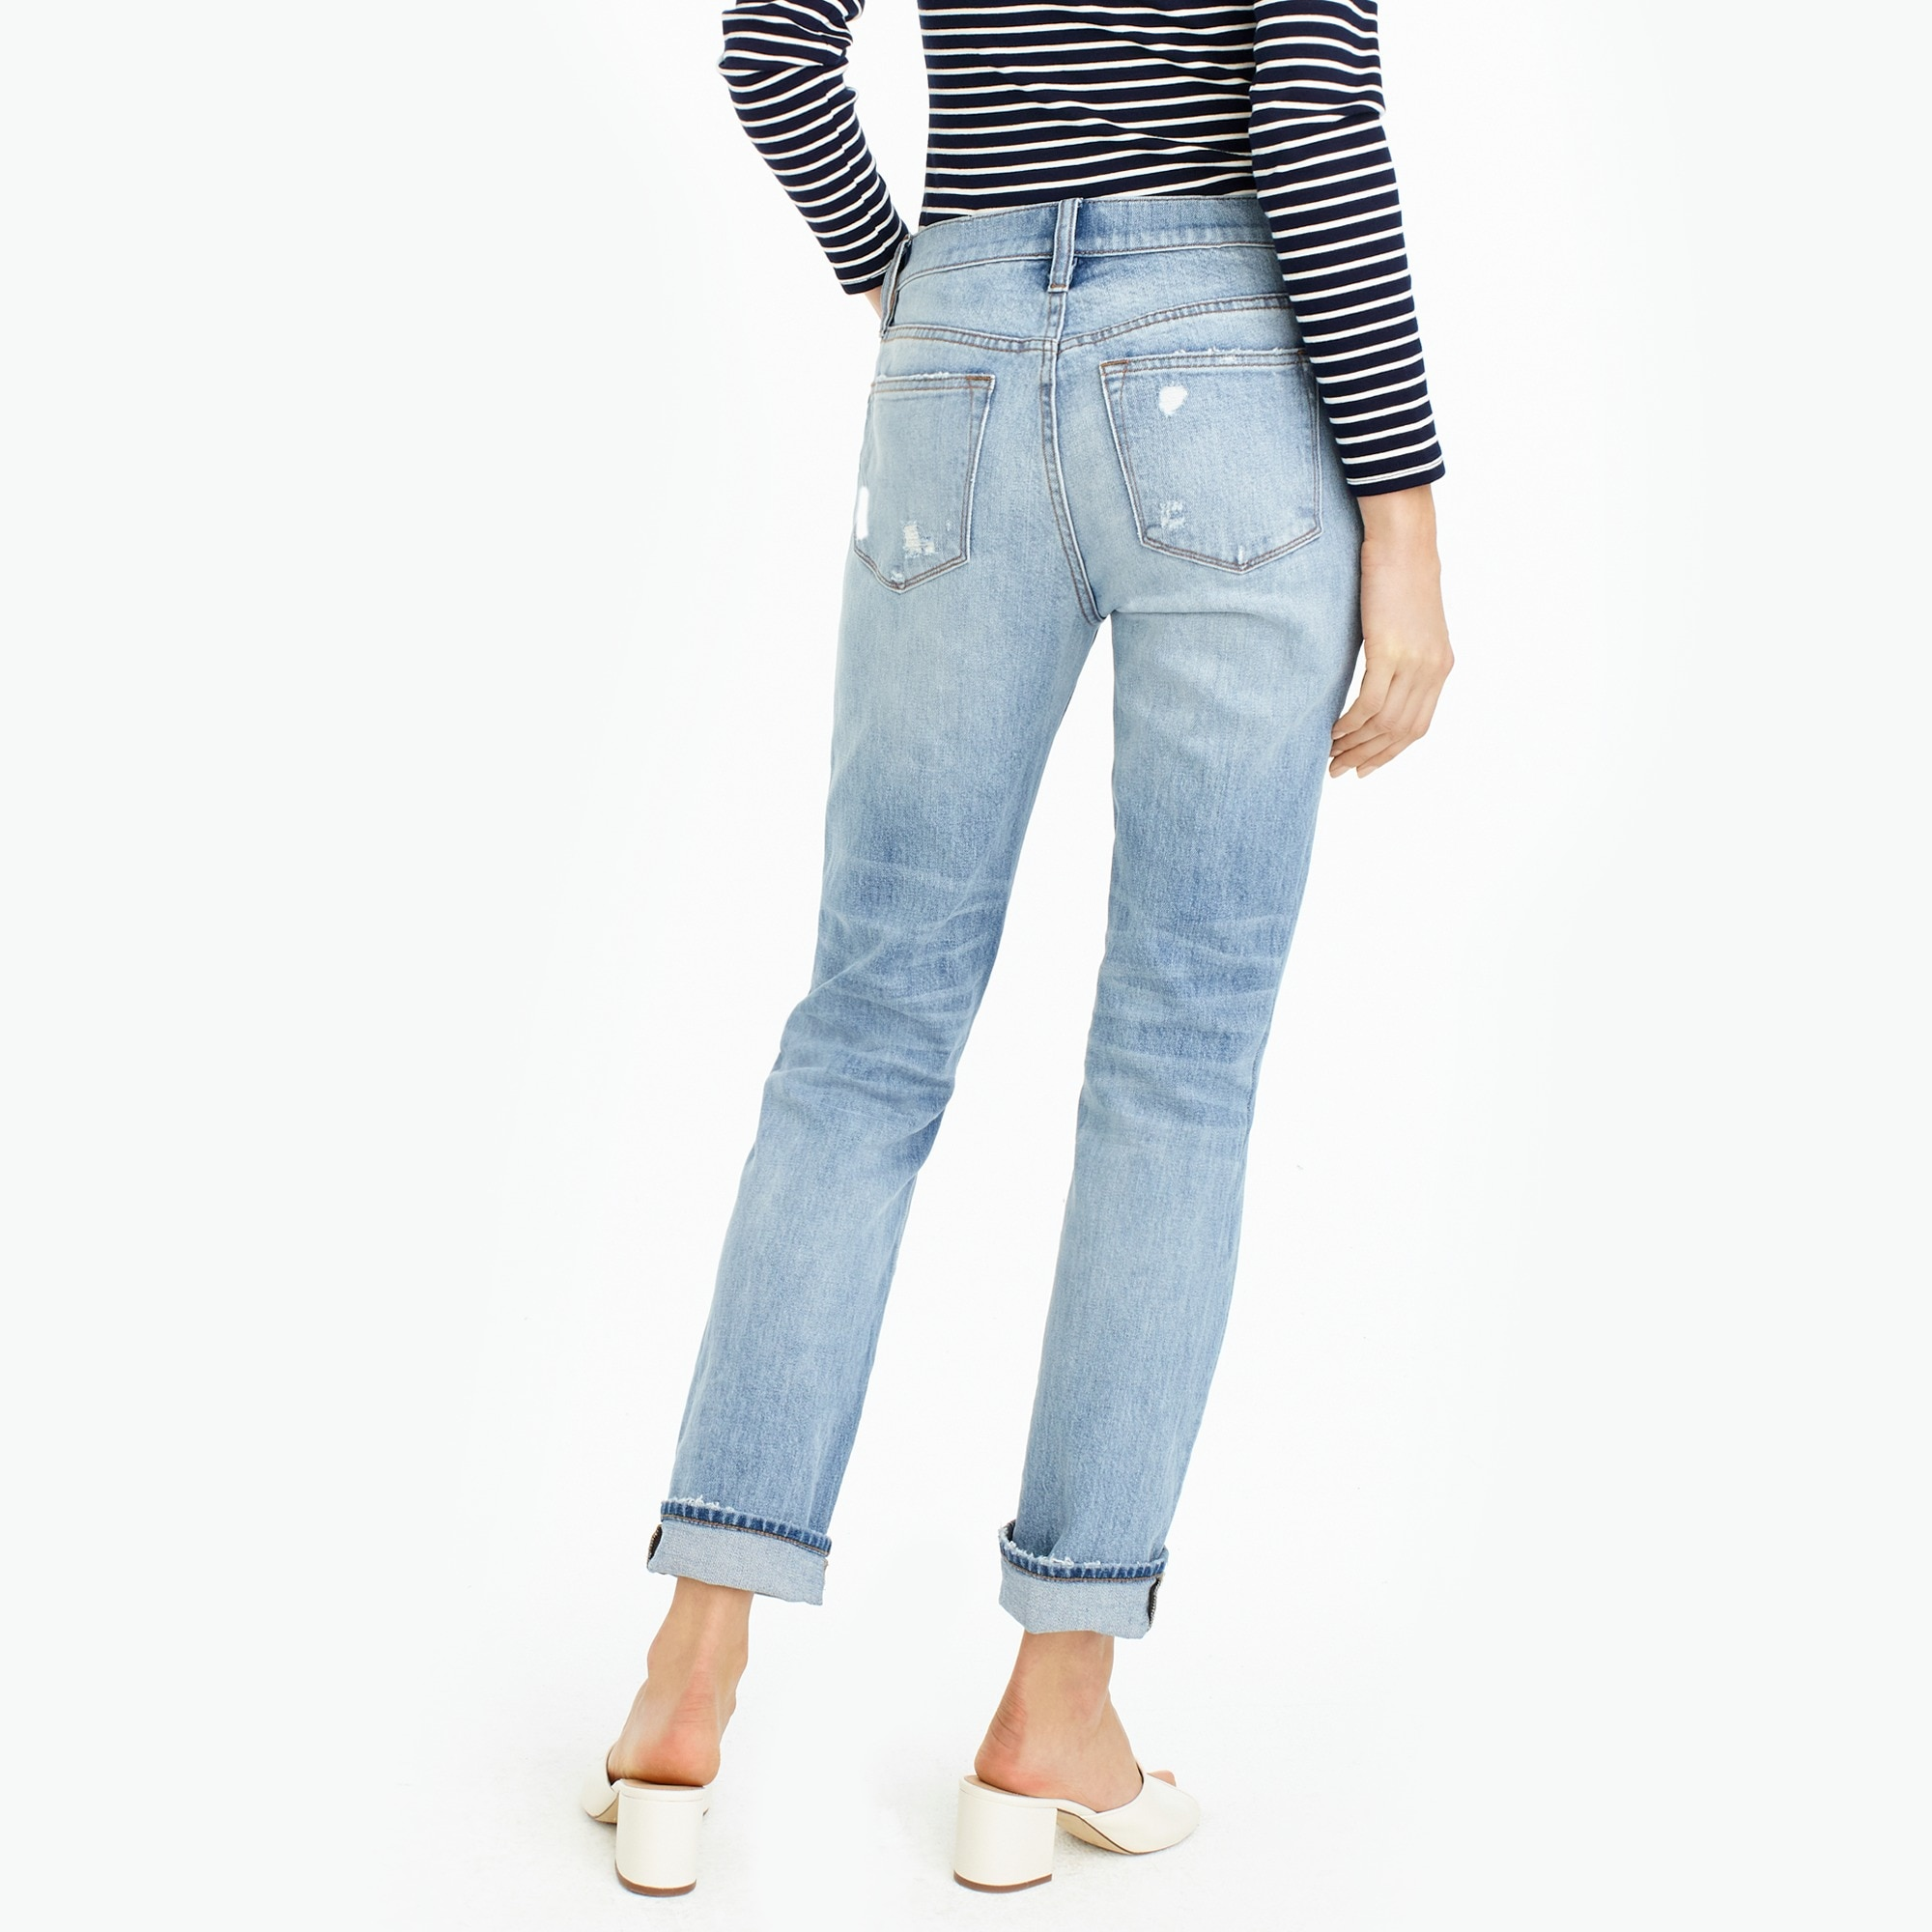 Image 2 for Slim boyfriend jean in Cedar wash